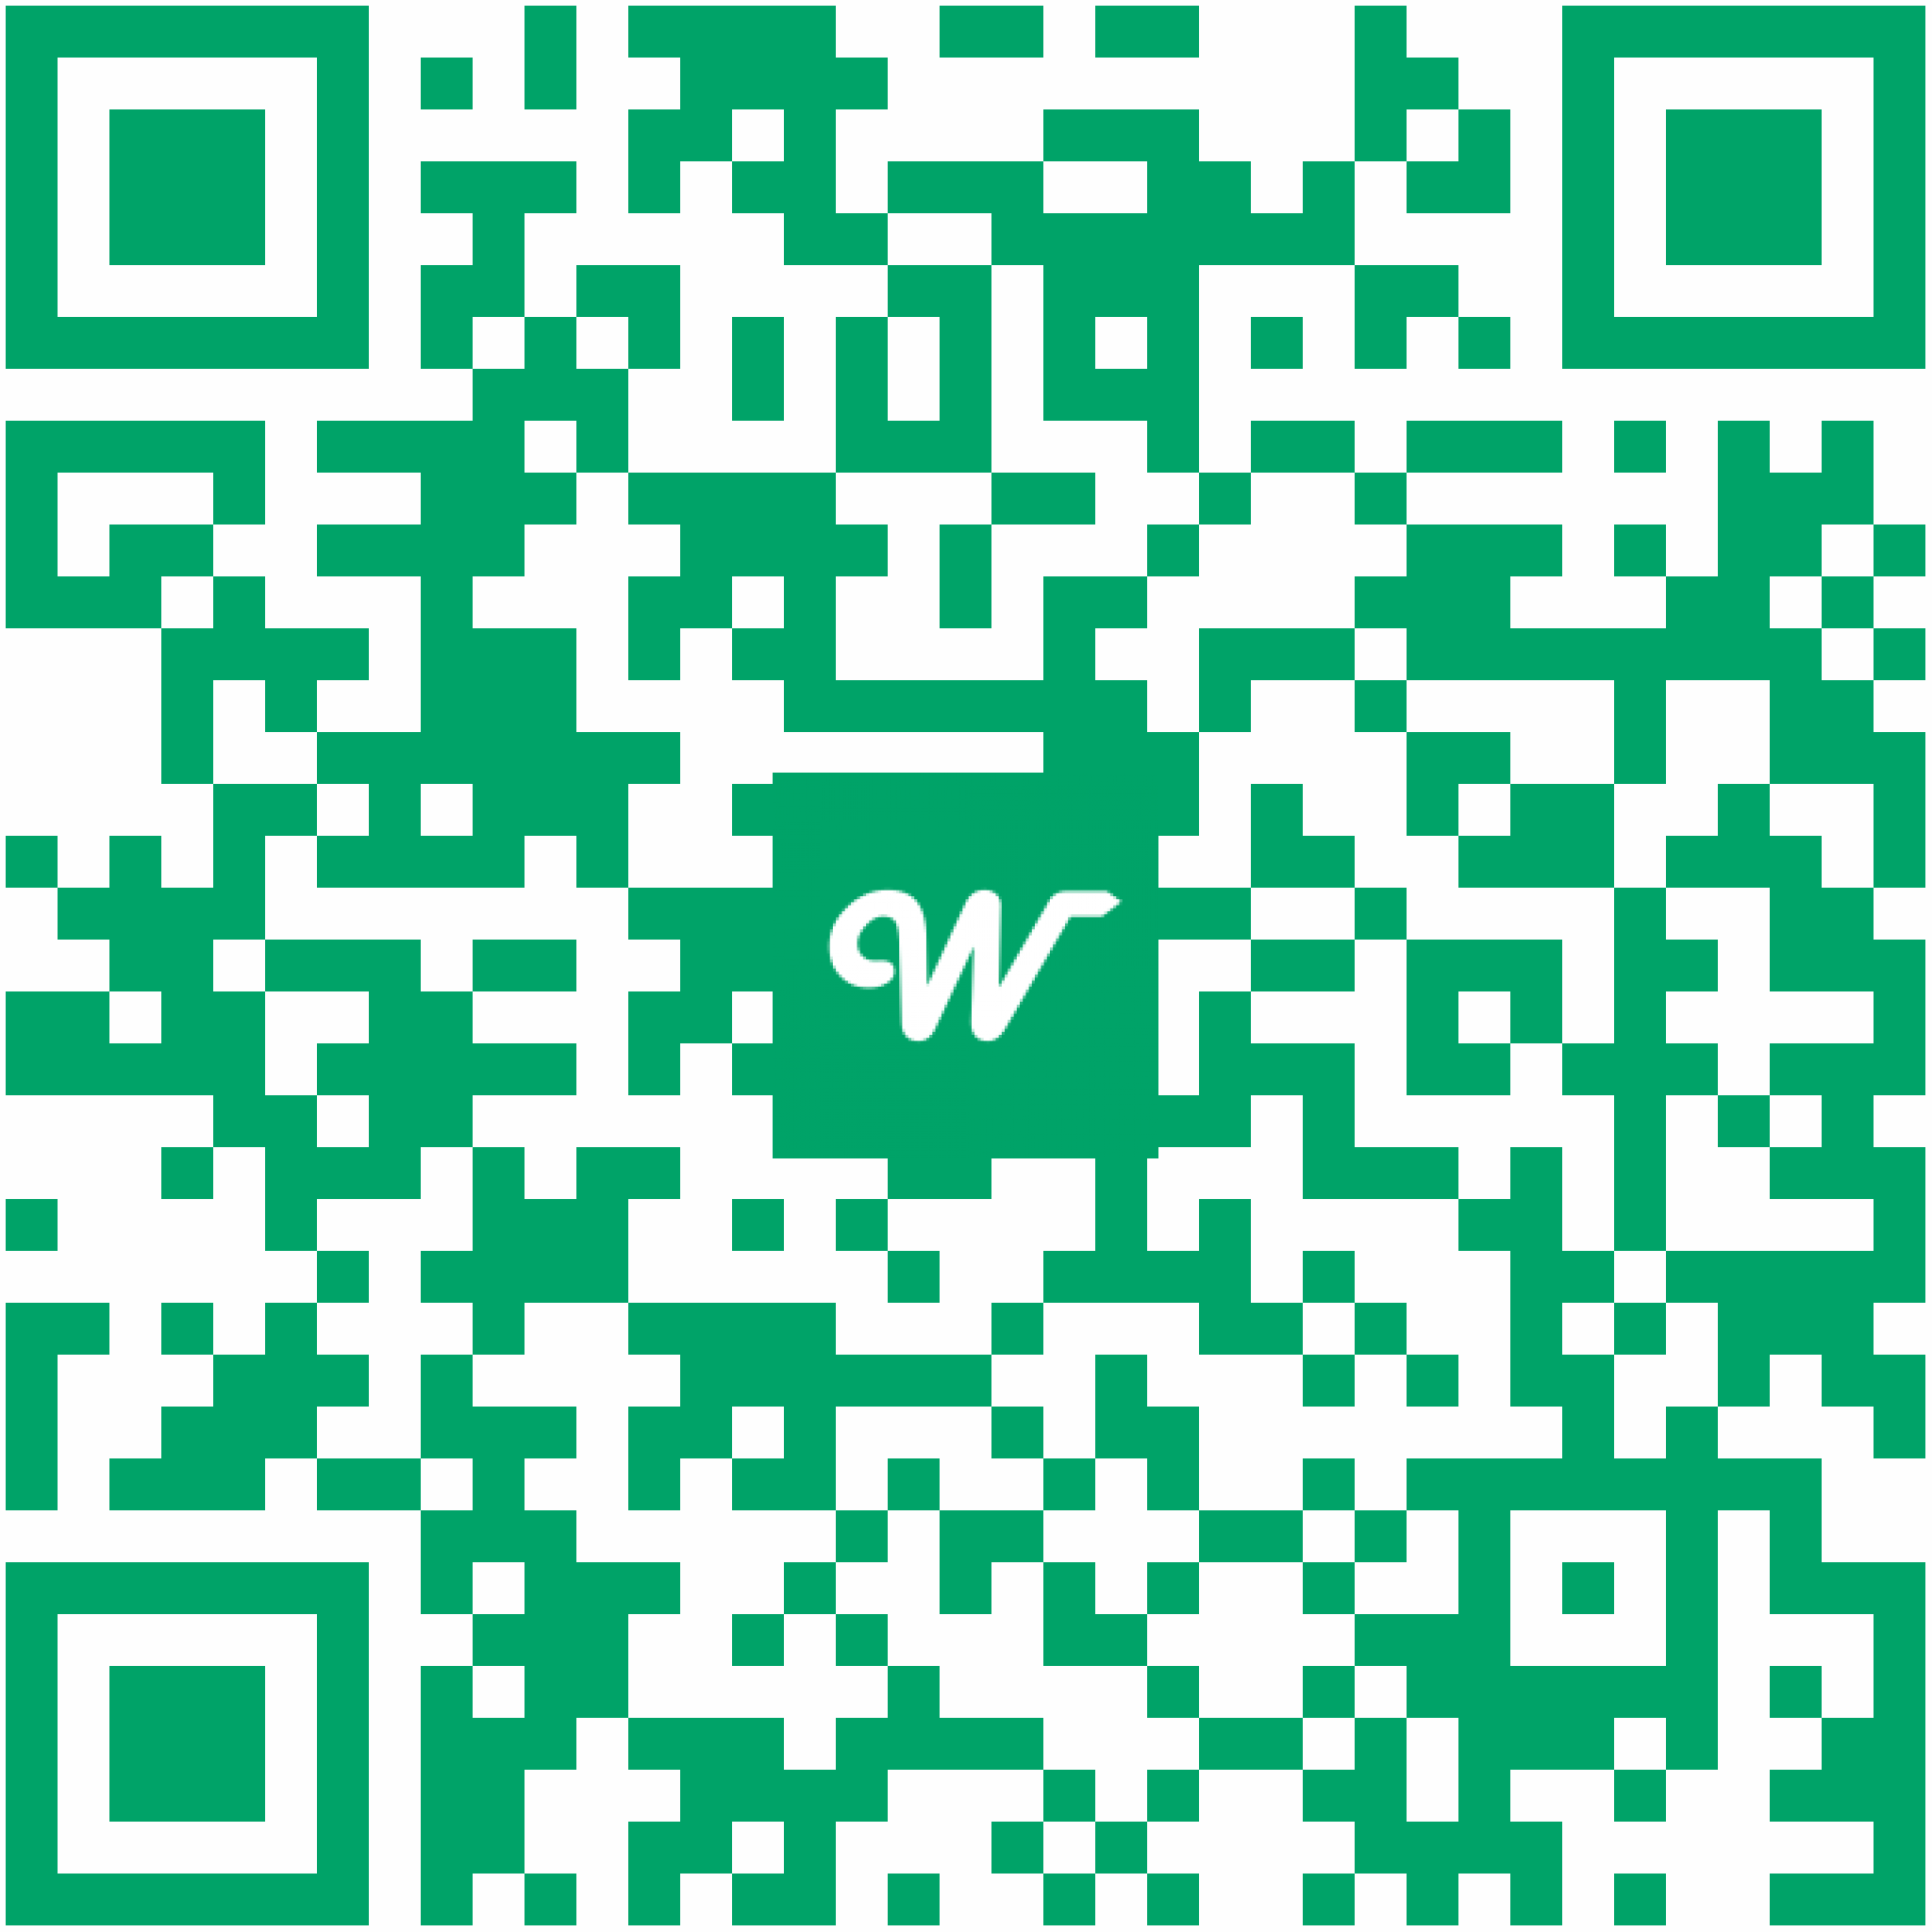 Printable QR code for Sun Inns Hotel Laksamana